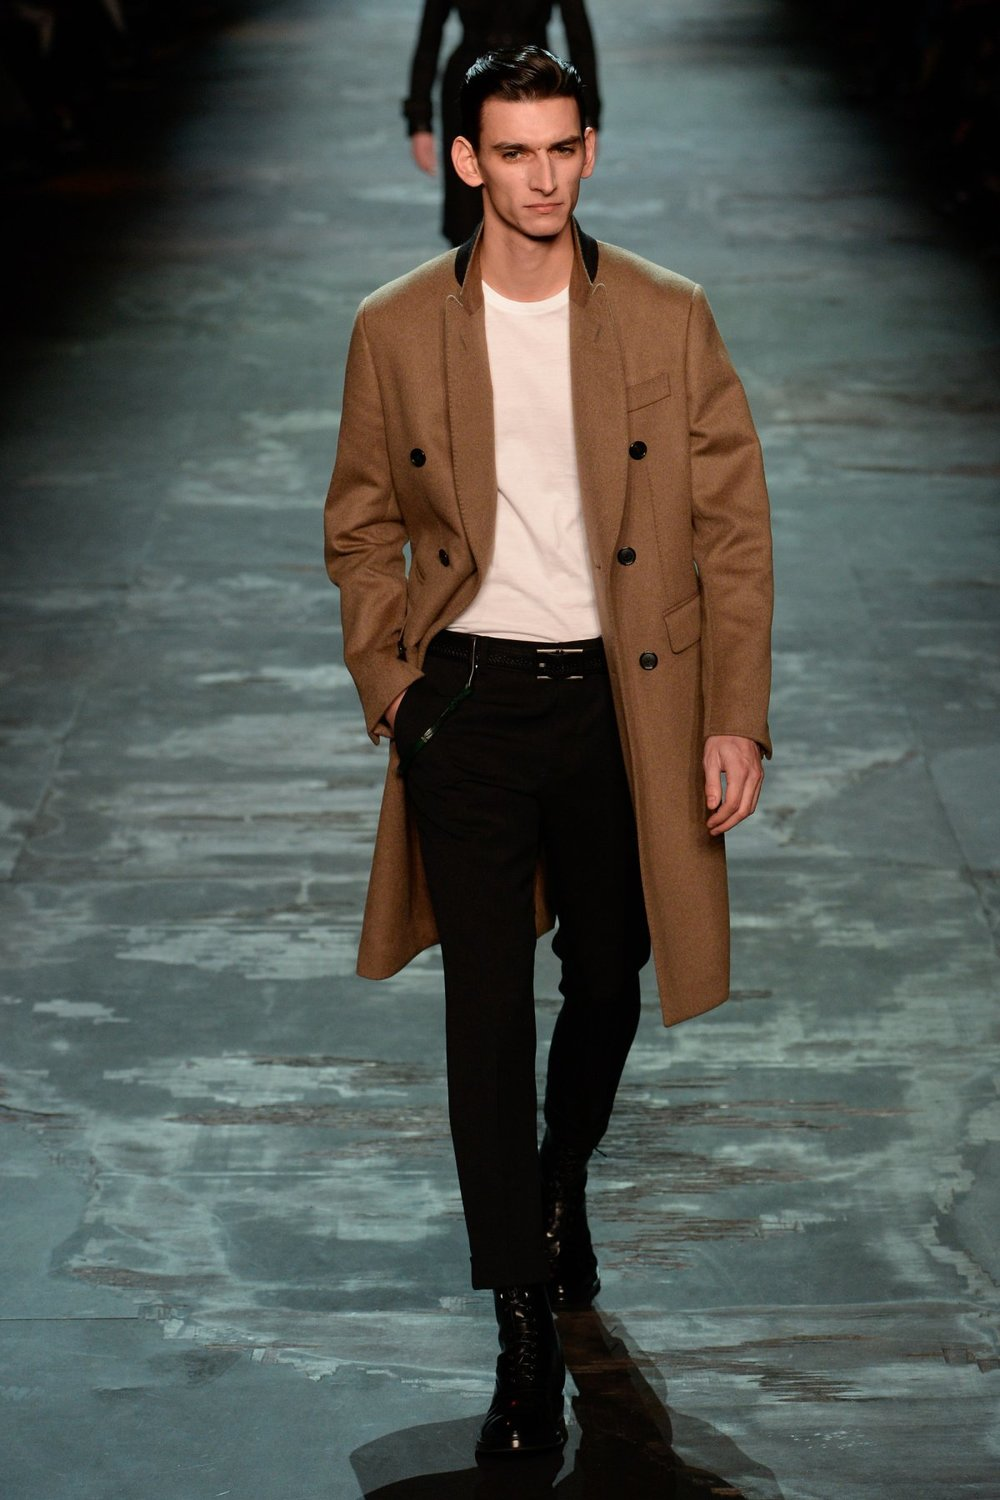 berluti_look_1_2017_aw_mens.jpeg